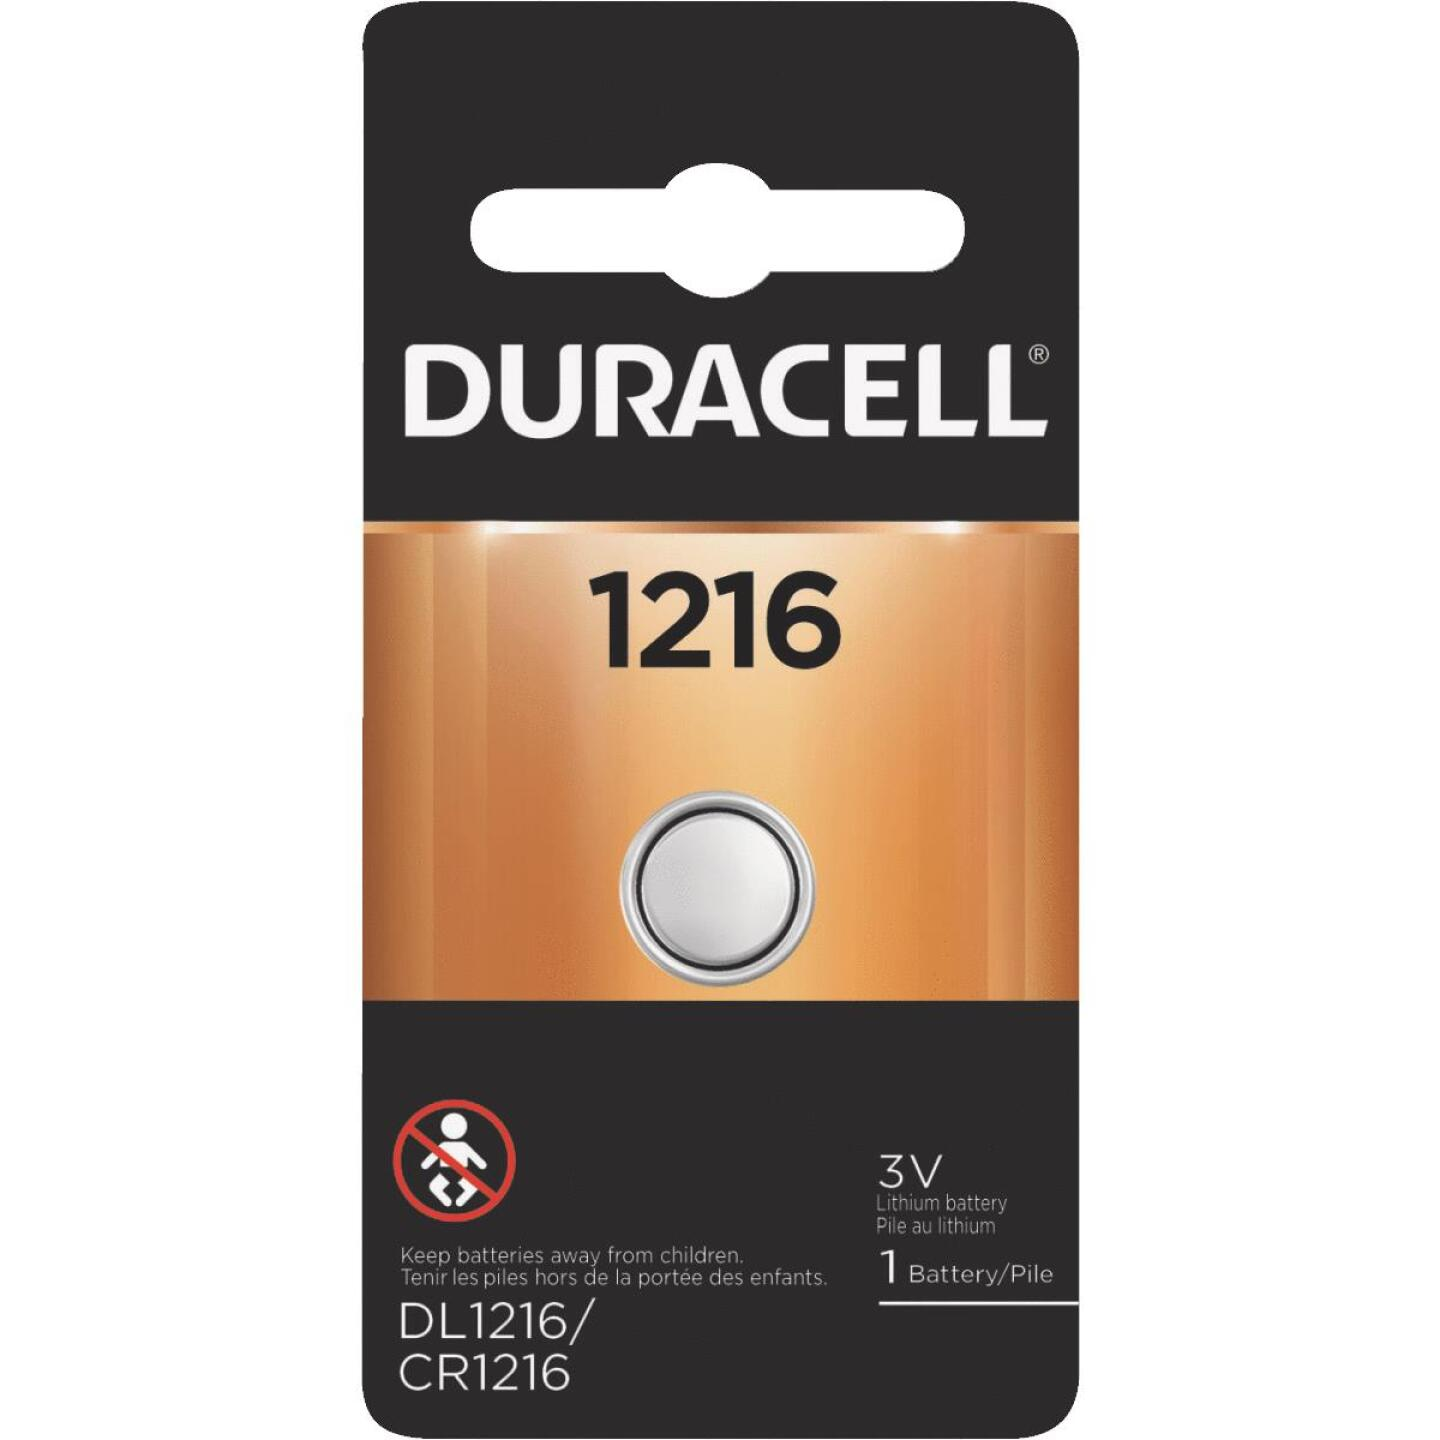 Duracell 1216 Lithium Coin Cell Battery Image 1